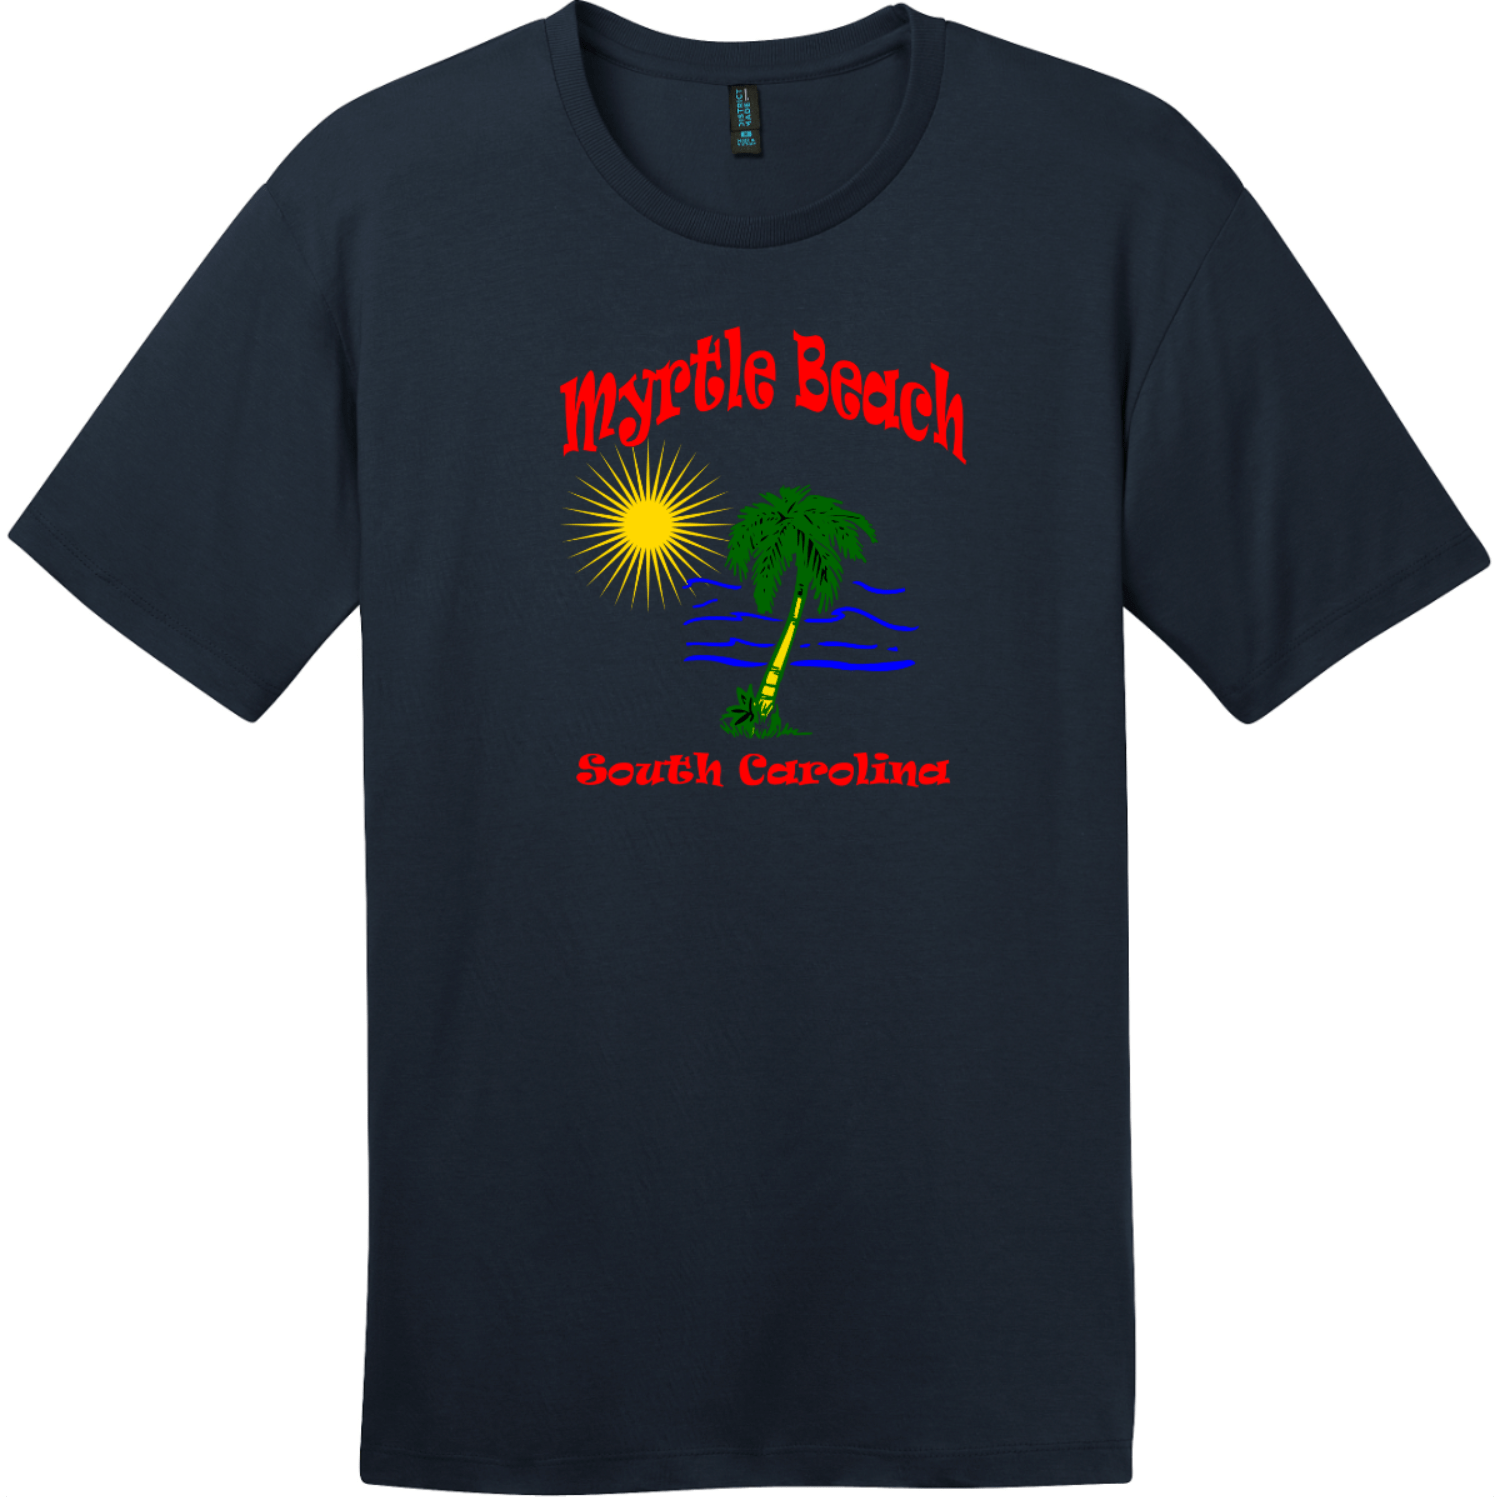 Myrtle Beach Palm Tree Water T-Shirt New Navy District Perfect Weight Tee DT104